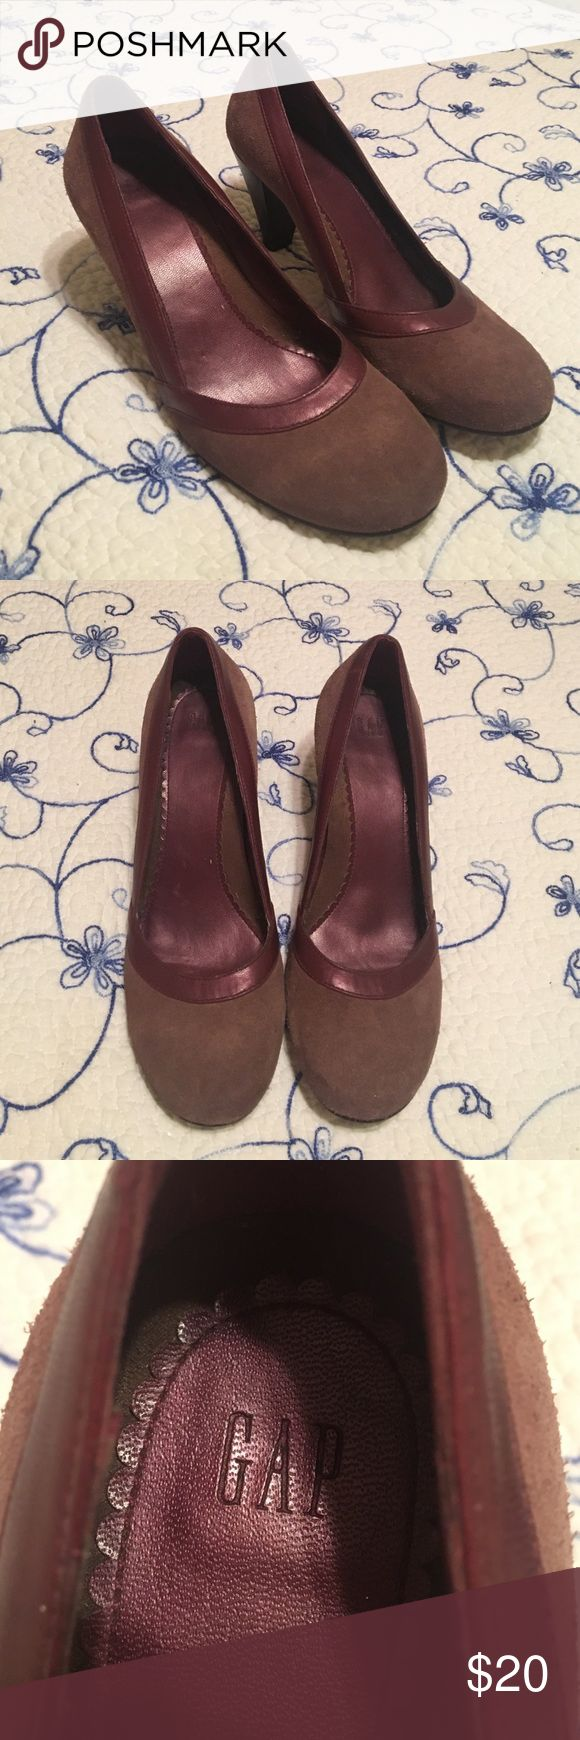 GAP heels Mauve suede heels with purple lining. Slightly worn. Good condition! GAP Shoes Heels